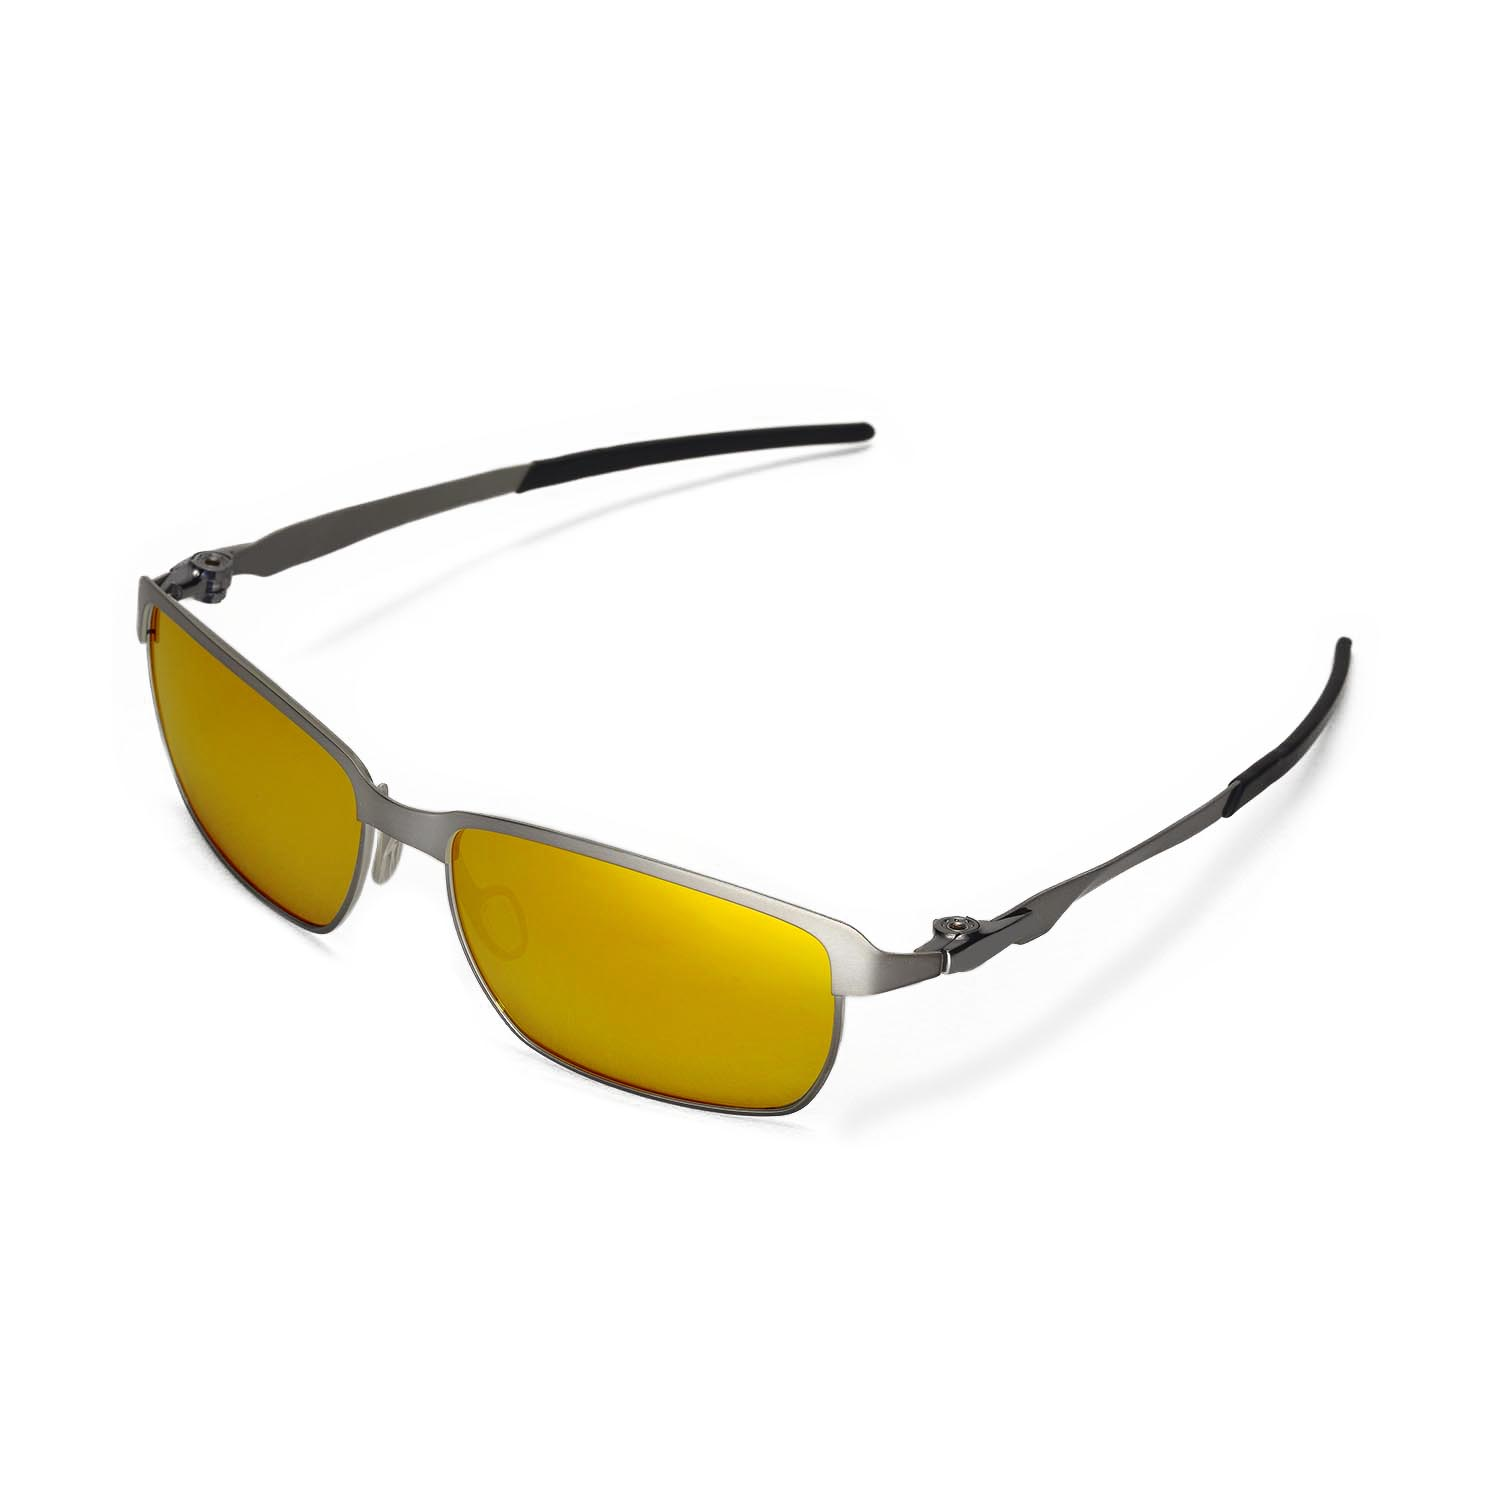 eea272a496f Details about New Walleva Polarized 24K Gold Lenses For Oakley Tinfoil  Sunglasses